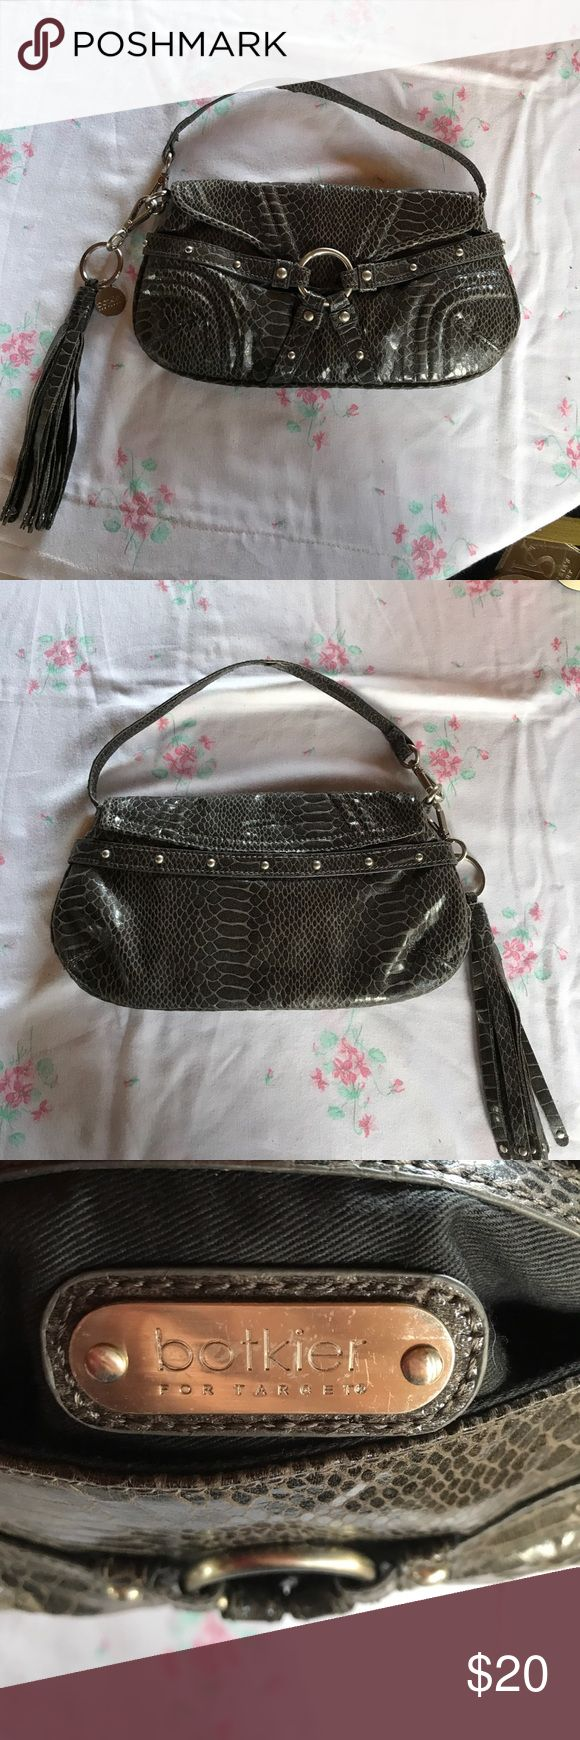 Botkier for target purse Pretty cute mini purse. In awesome condition. Open to offers. No trades Botkier Bags Mini Bags